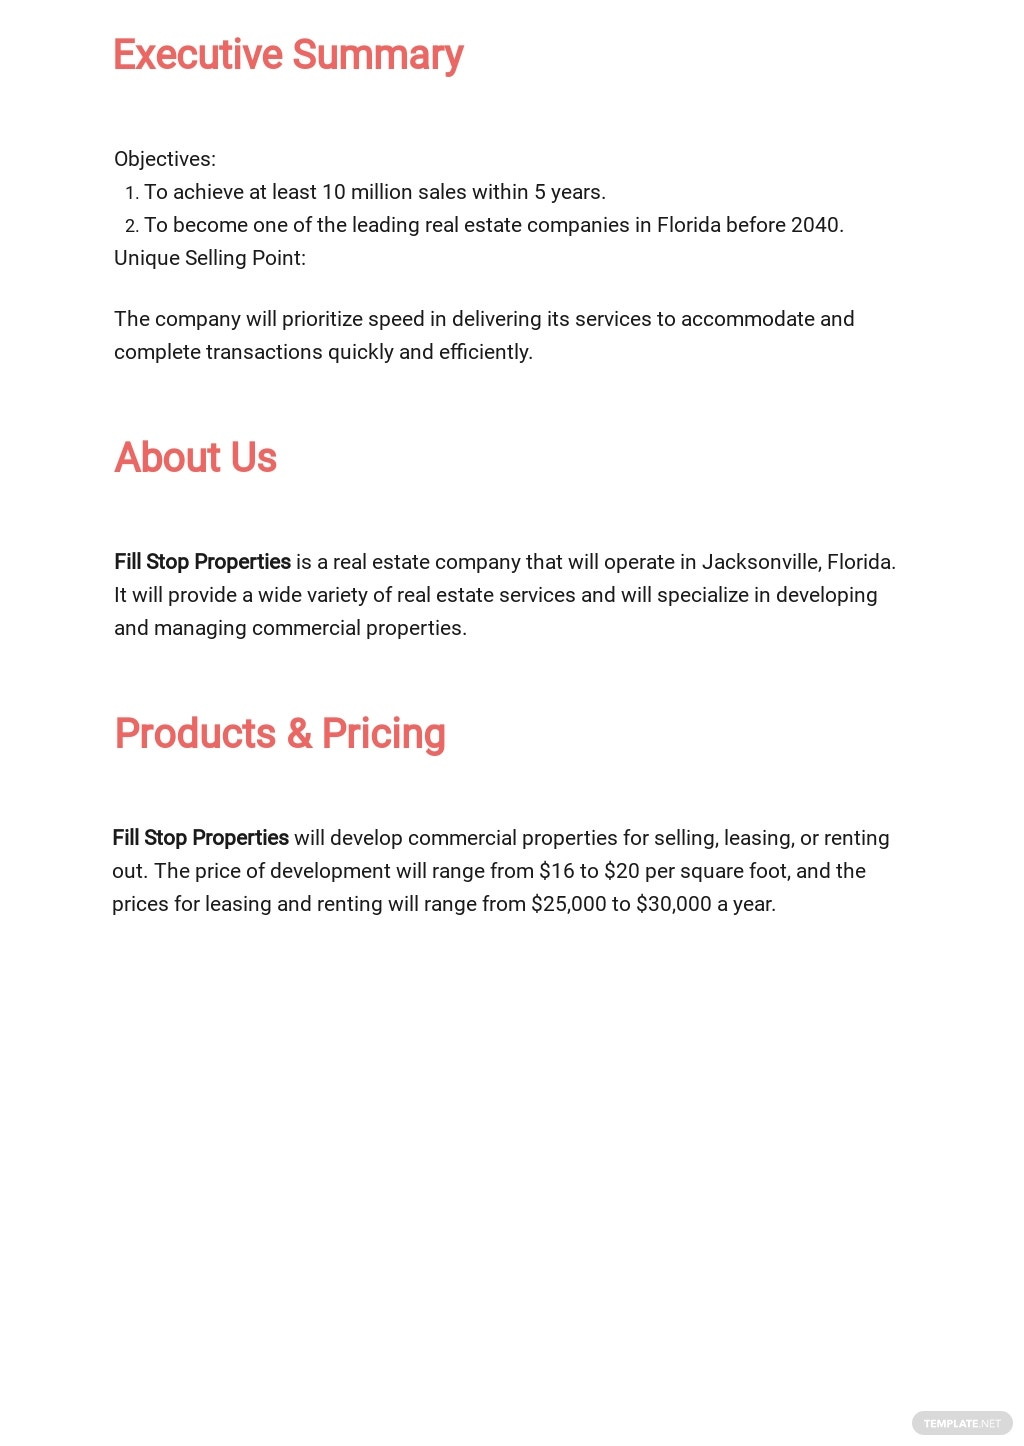 Free Commercial Real Estate Business Plan Template 1.jpe